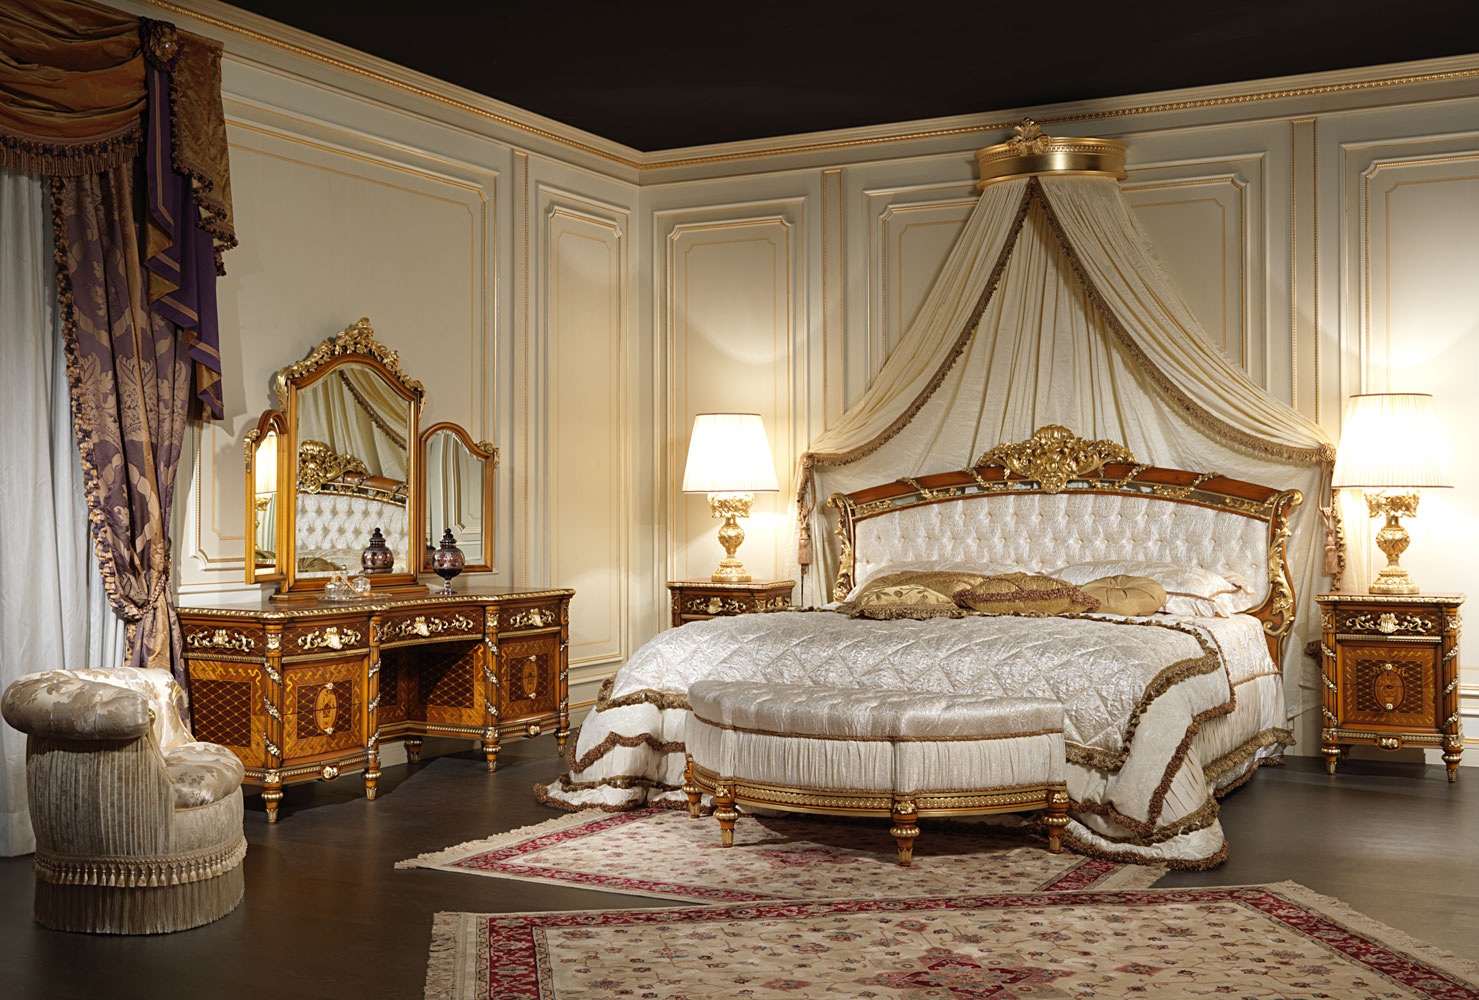 Classic bedroom in walnut louis xvi style for Interni di case classiche